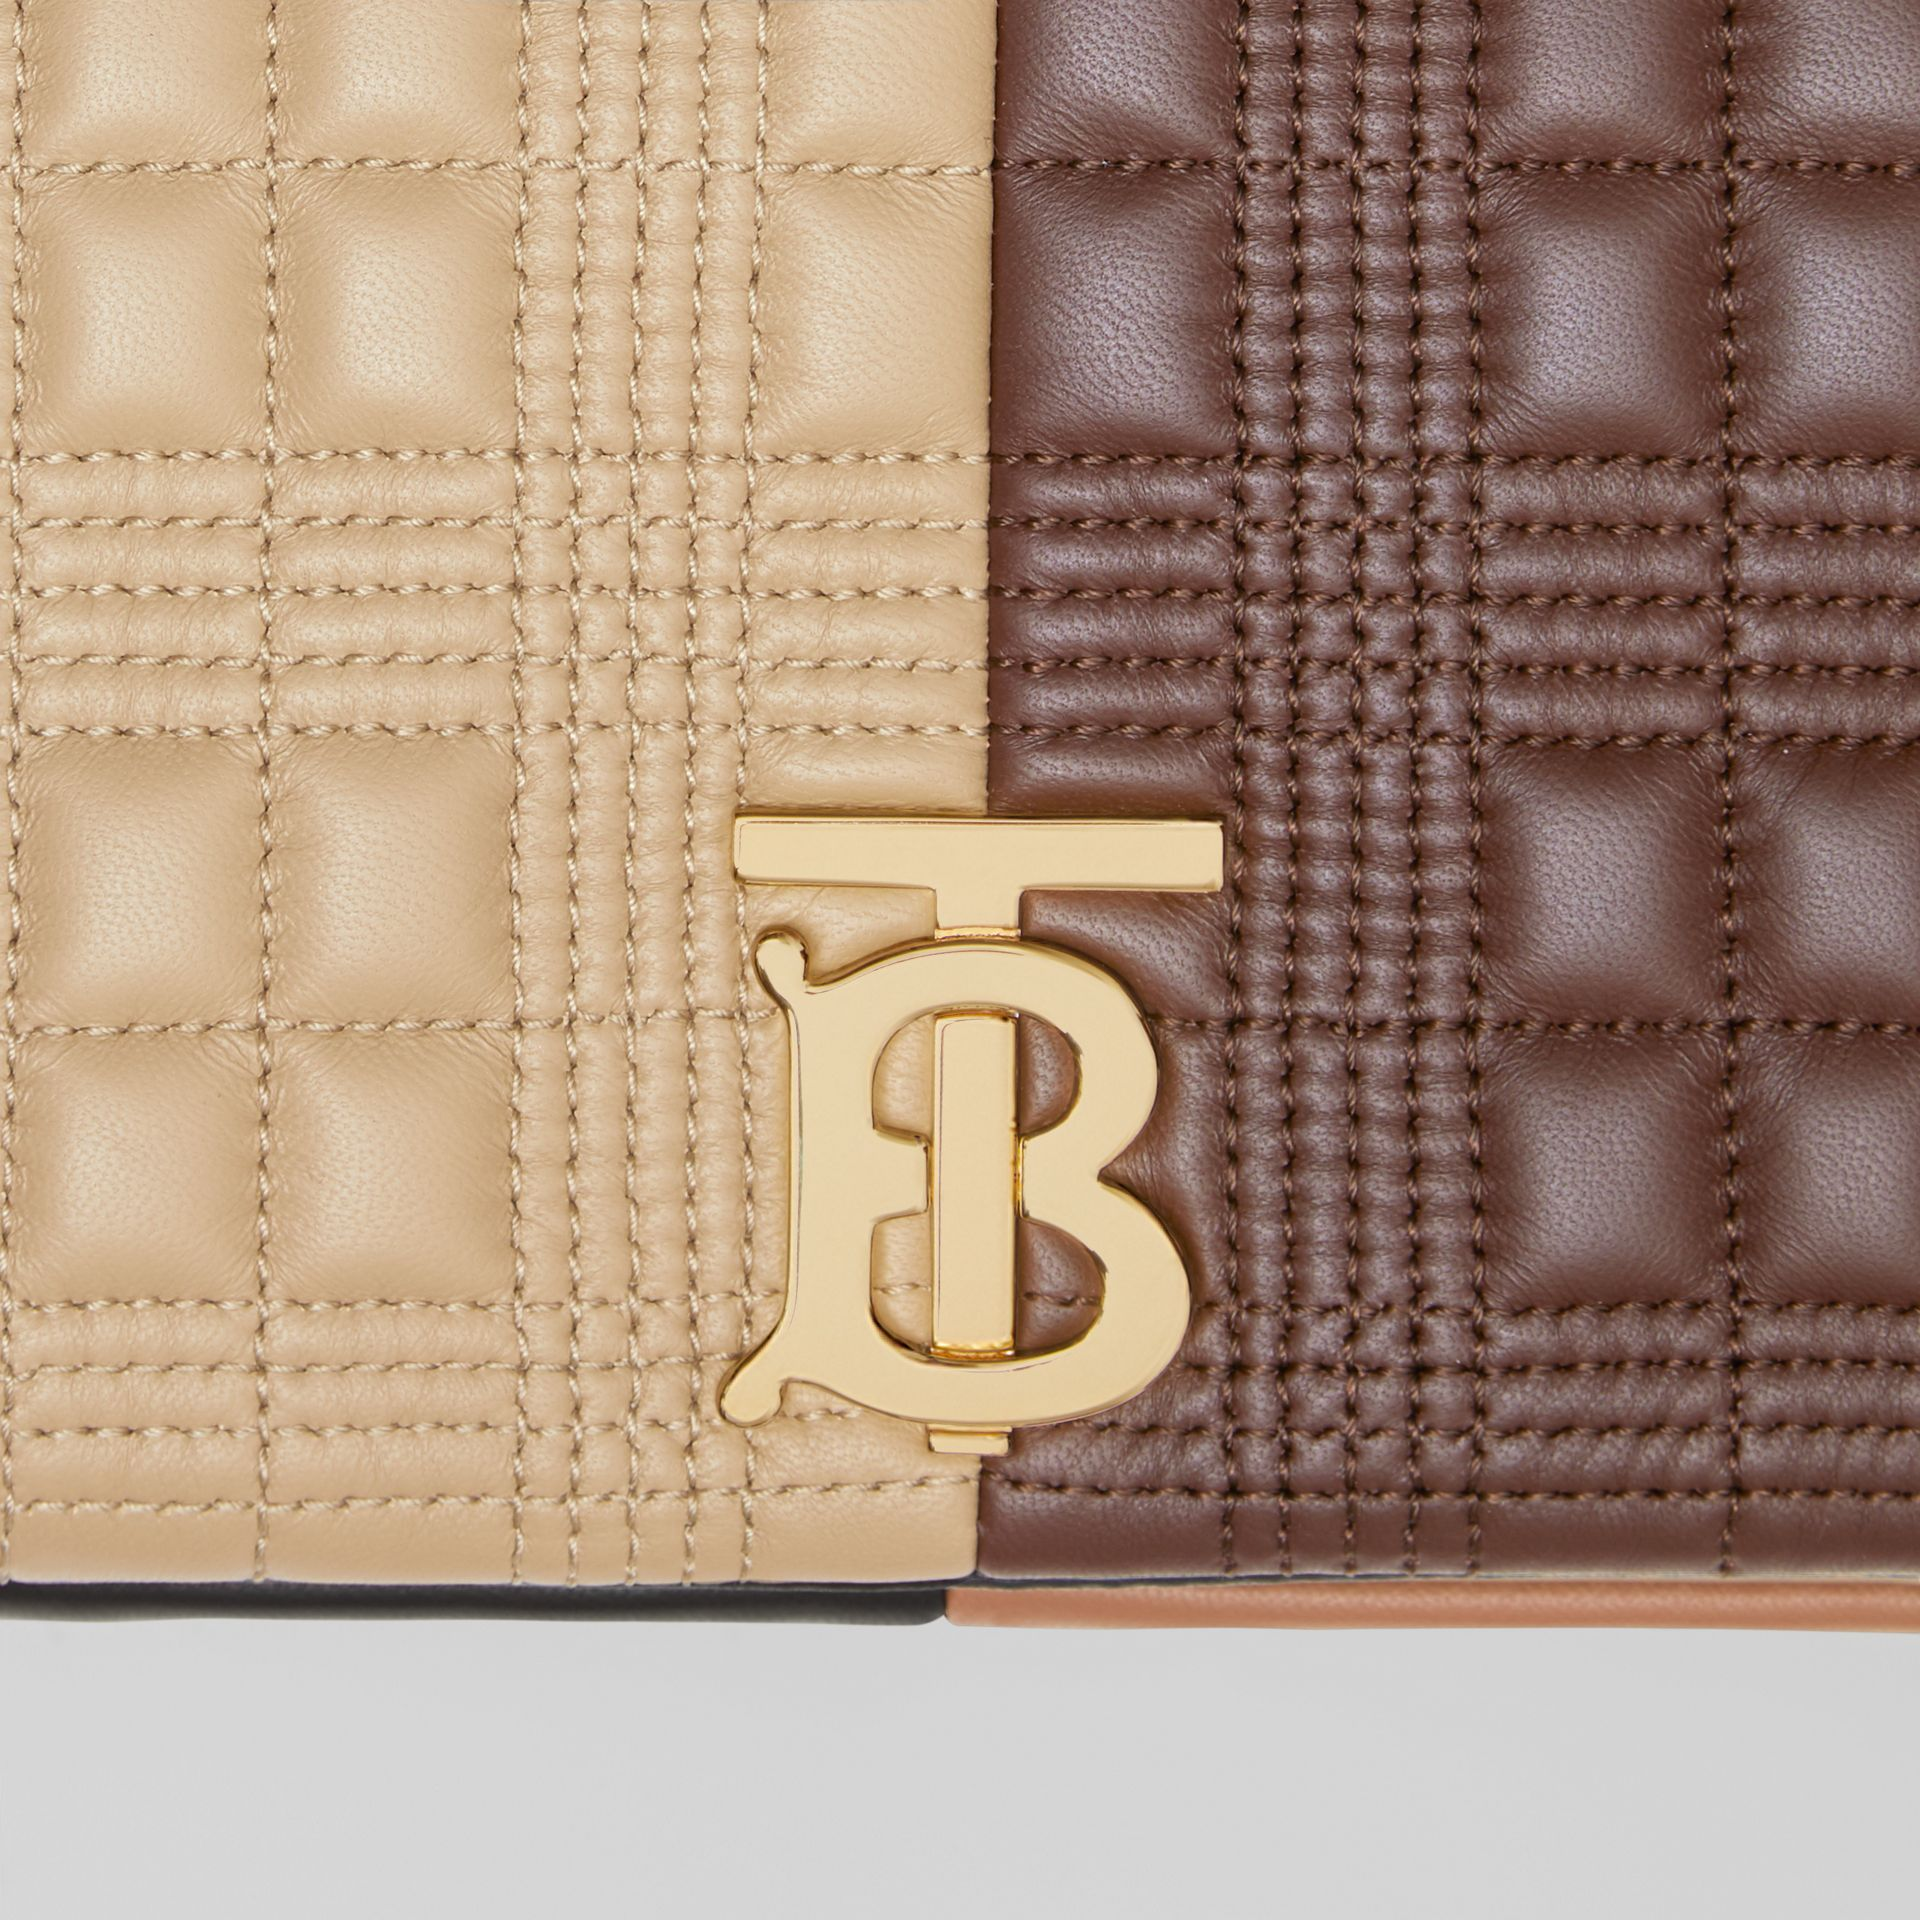 Small Quilted Colour Block Lambskin Lola Bag in Soft Fawn/dark Mocha - Women | Burberry - gallery image 1